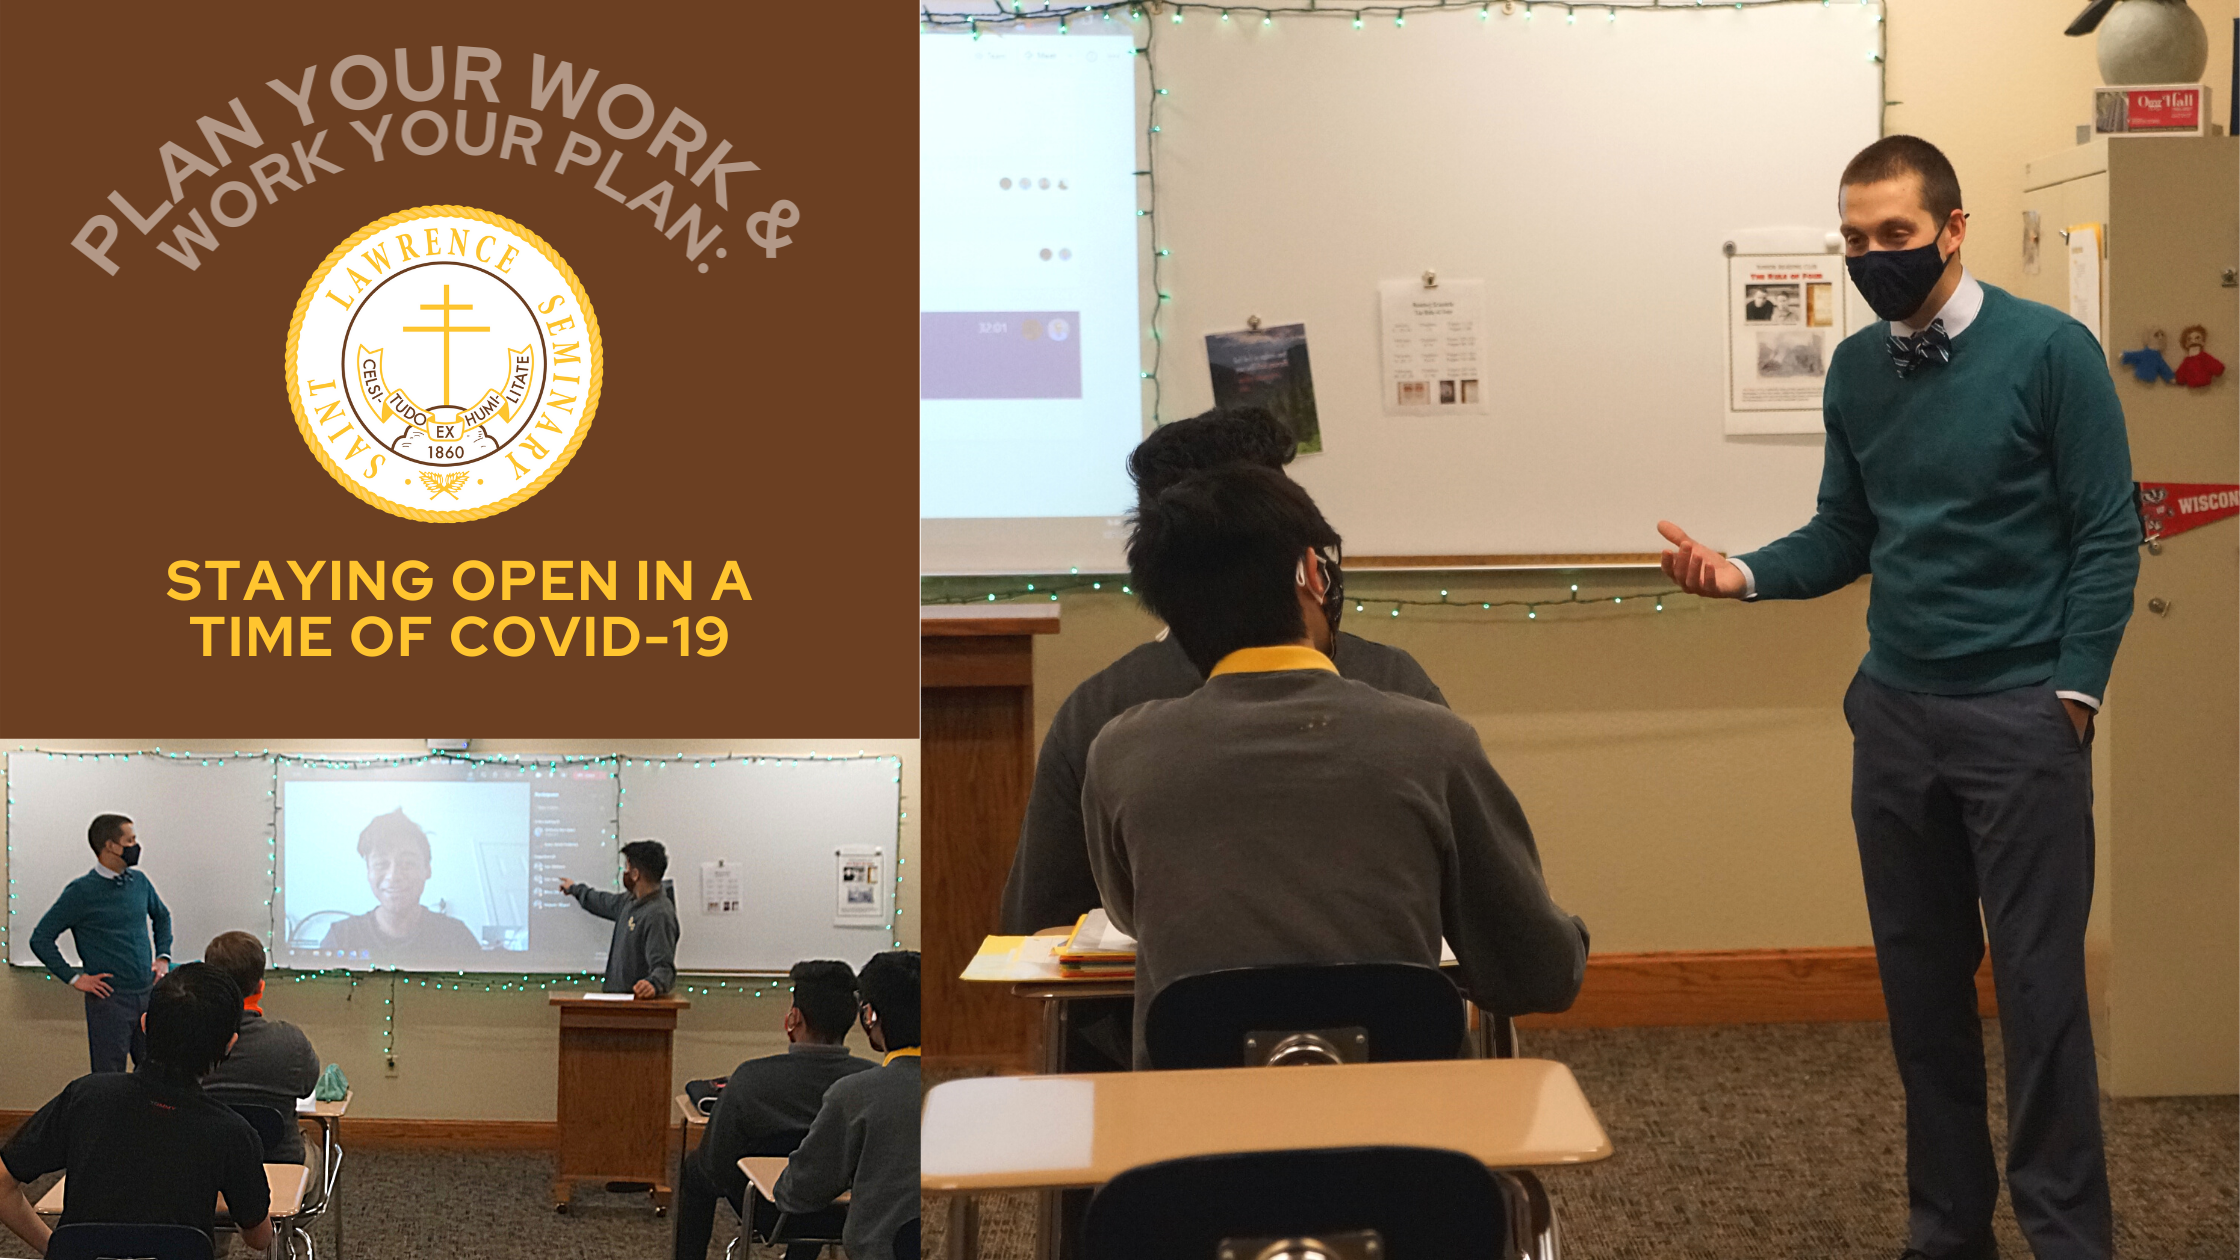 """a collage showing a teacher and students in a classroom, all wearing masks. text overlaid says """"Plan your work & work your plan: staying open in a time of Covid-19"""""""